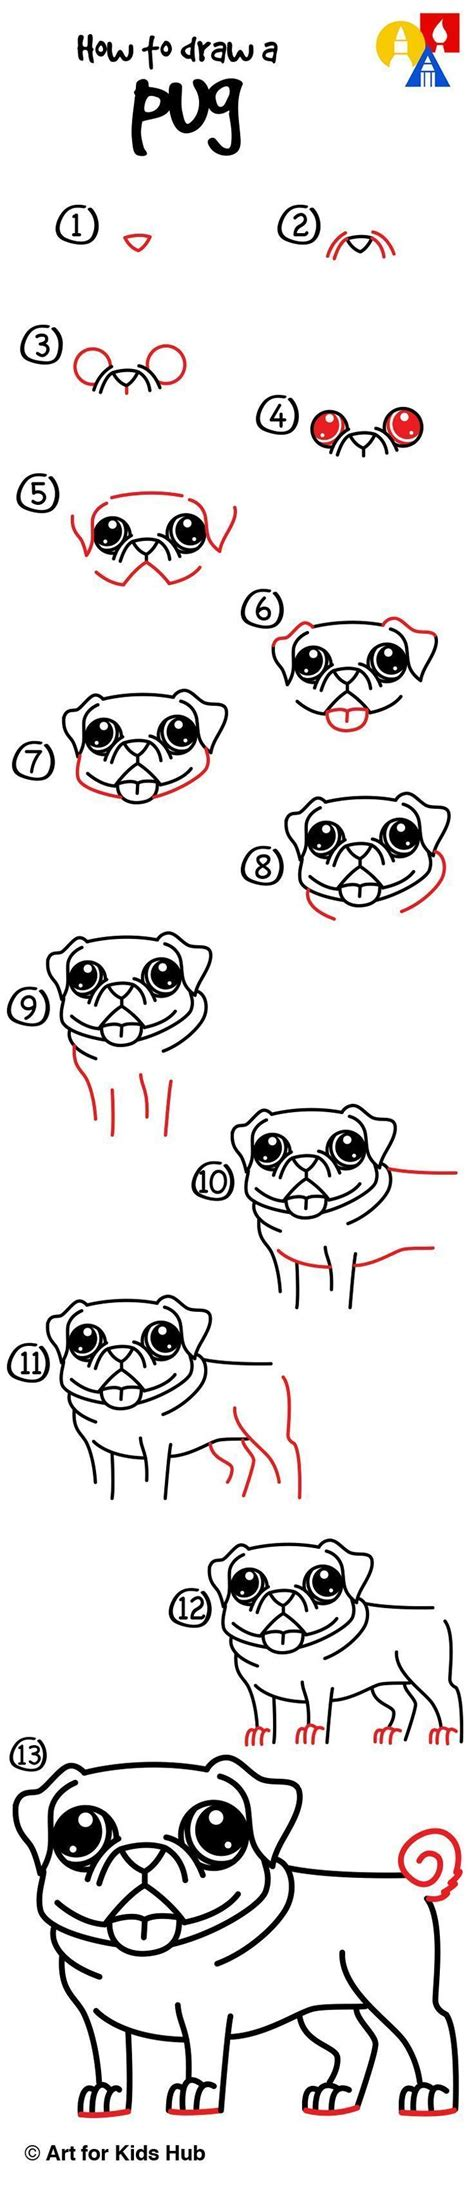 how to draw a pug for 25 best ideas about a pug on pug puppies pugs and pug puppies